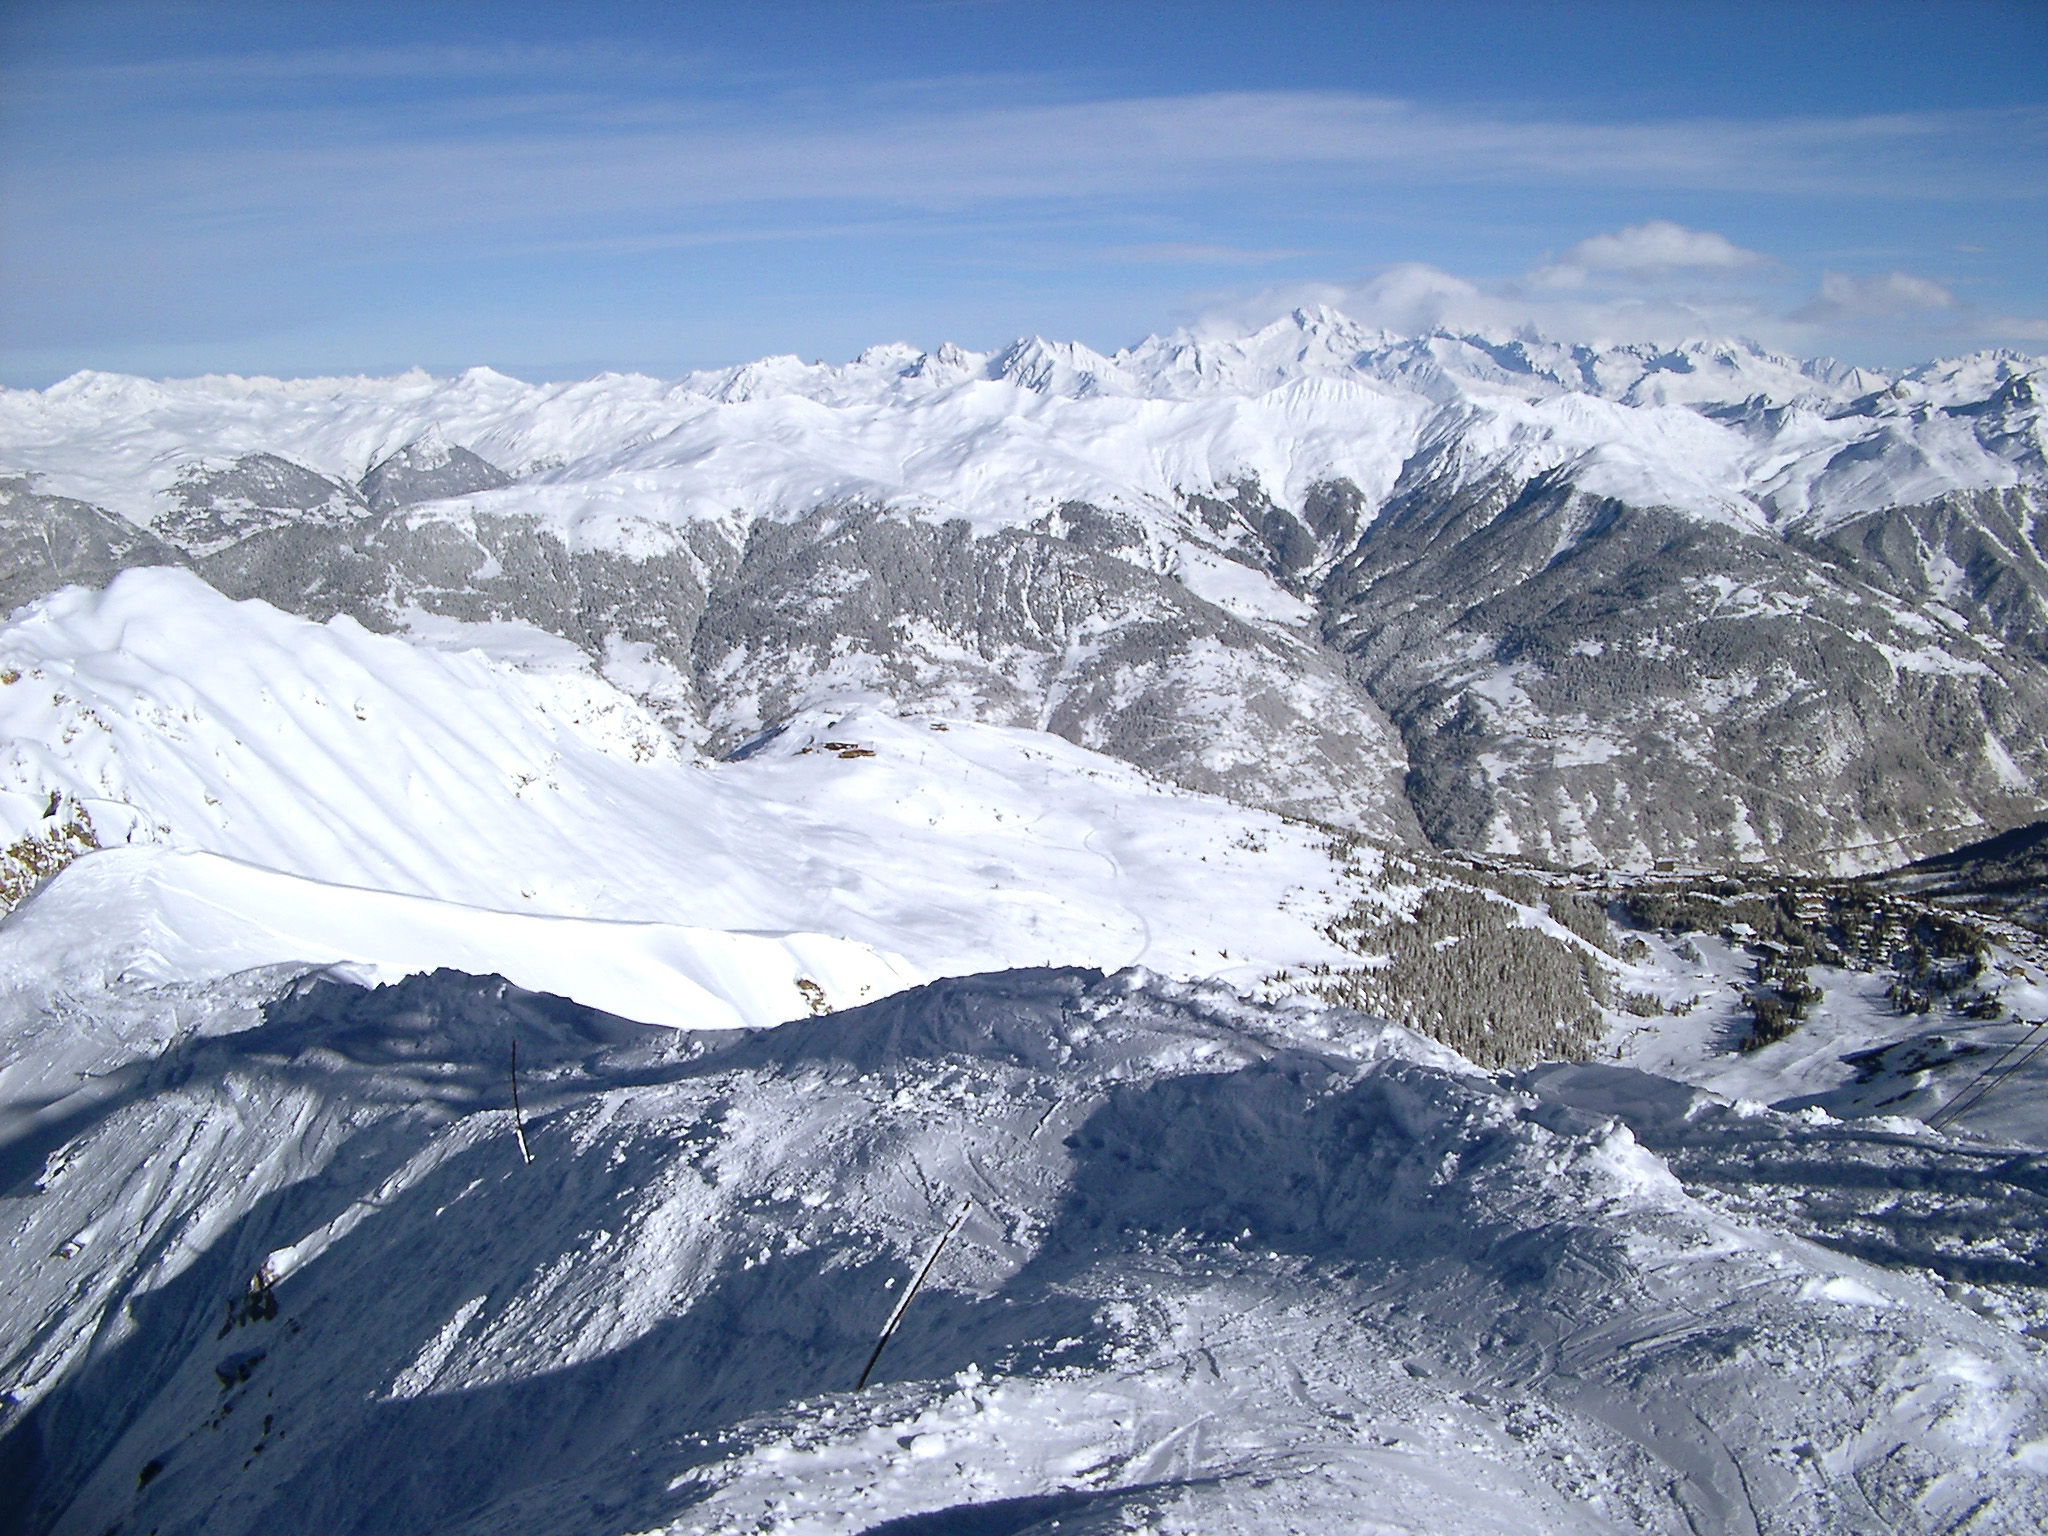 Extensive View of Huge French Mountains Filled with Snow in the Winter Holiday Season